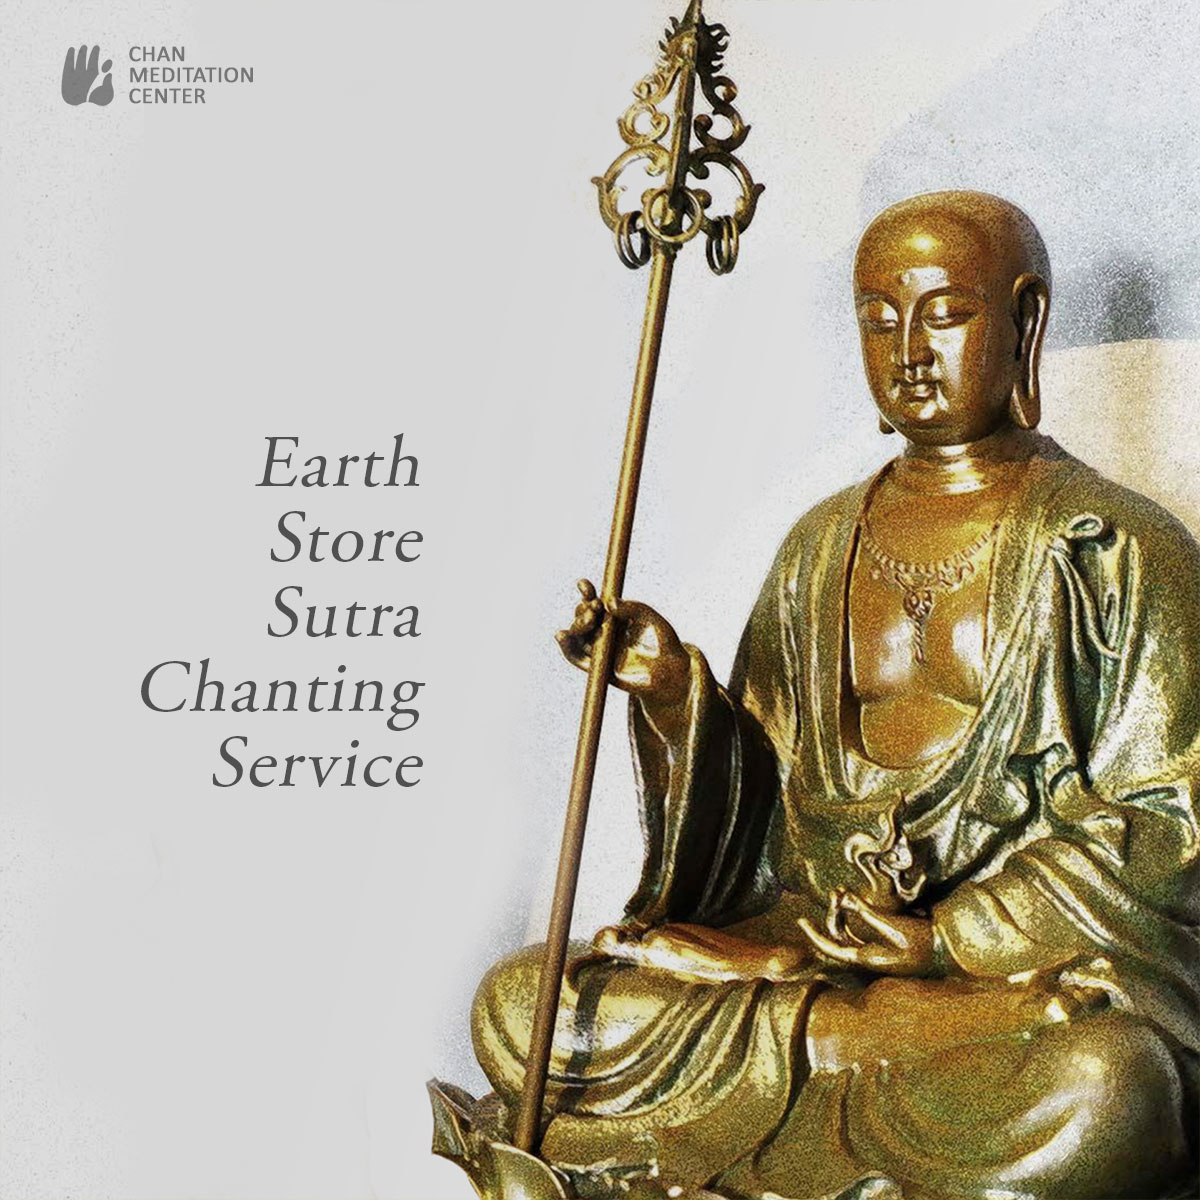 Online Earth Store Sutra Chanting Service